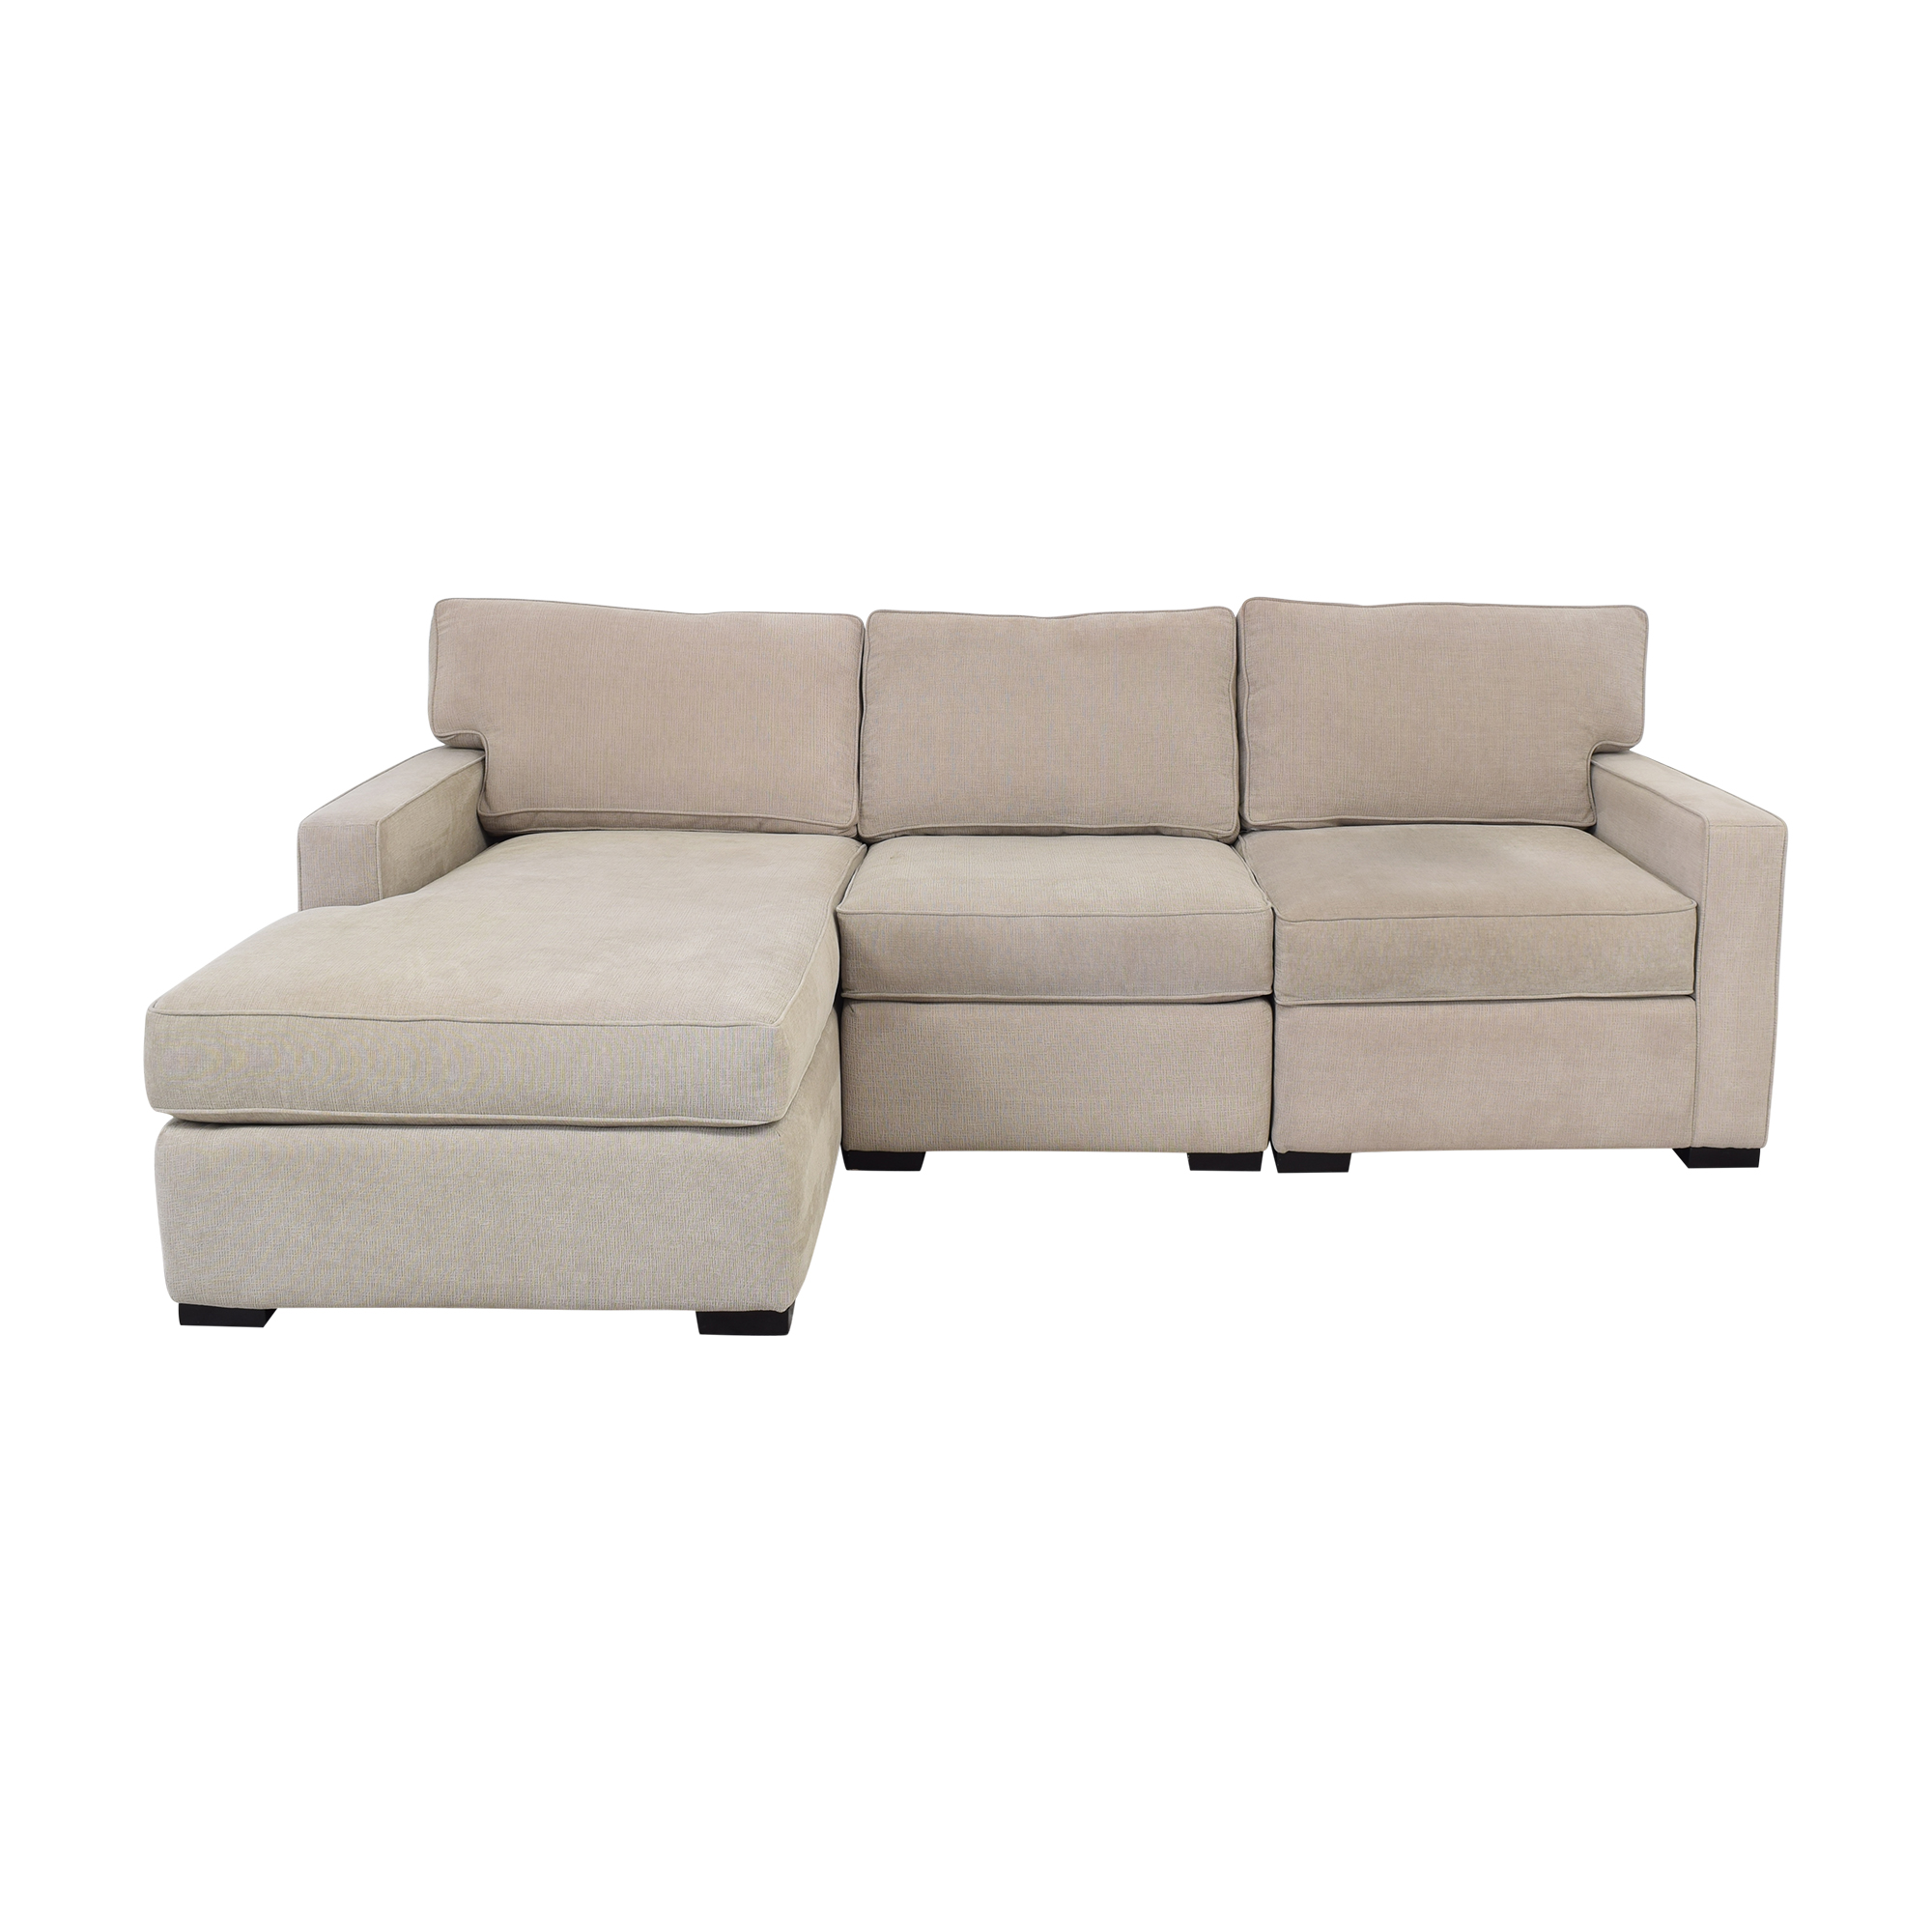 Macy's Macy's Chaise Sectional Sofa price